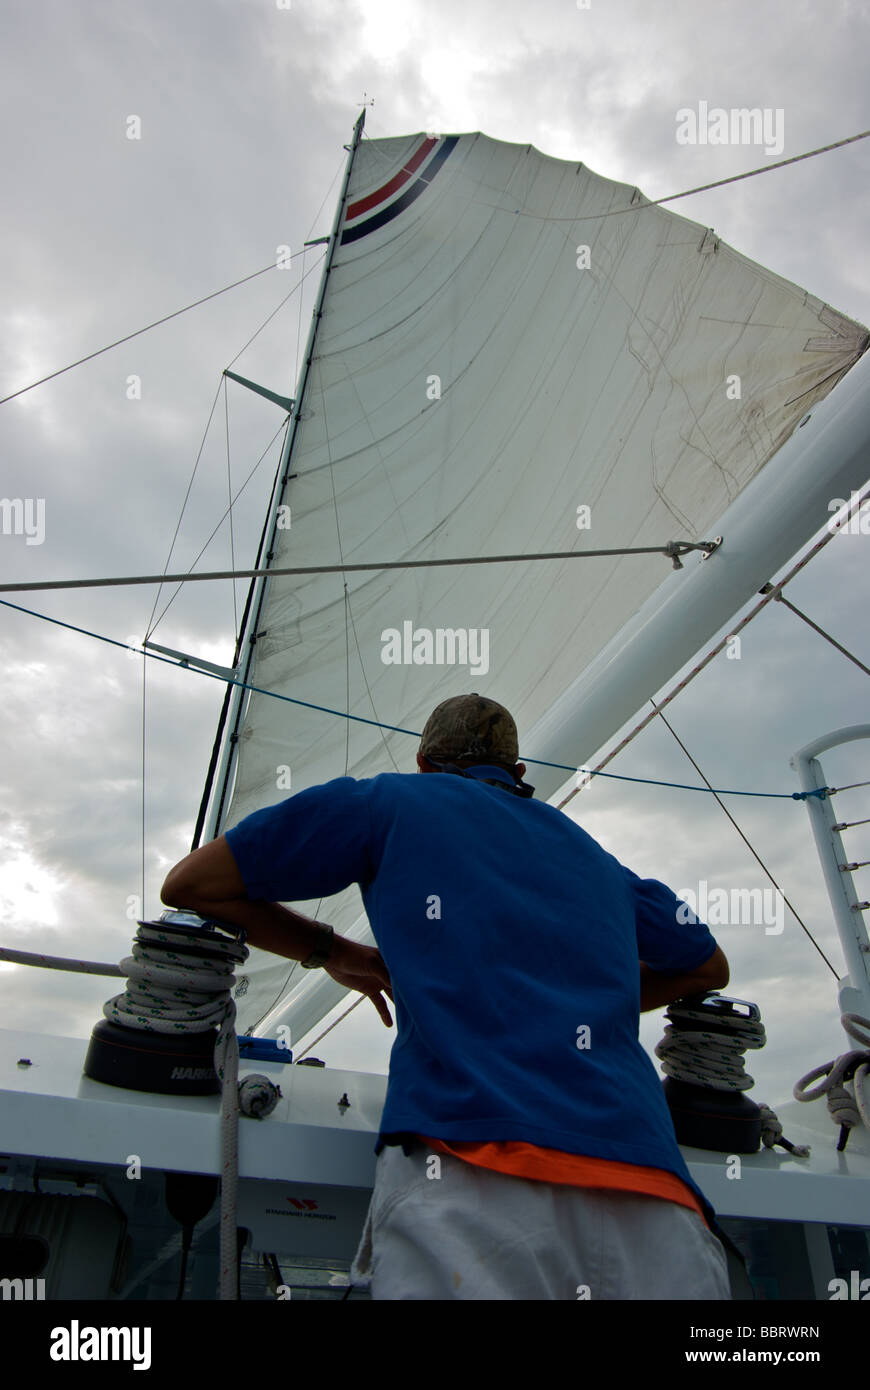 Catamaran charterboat skipper at helm watching storm clouds above mainsail while steering his course - Stock Image